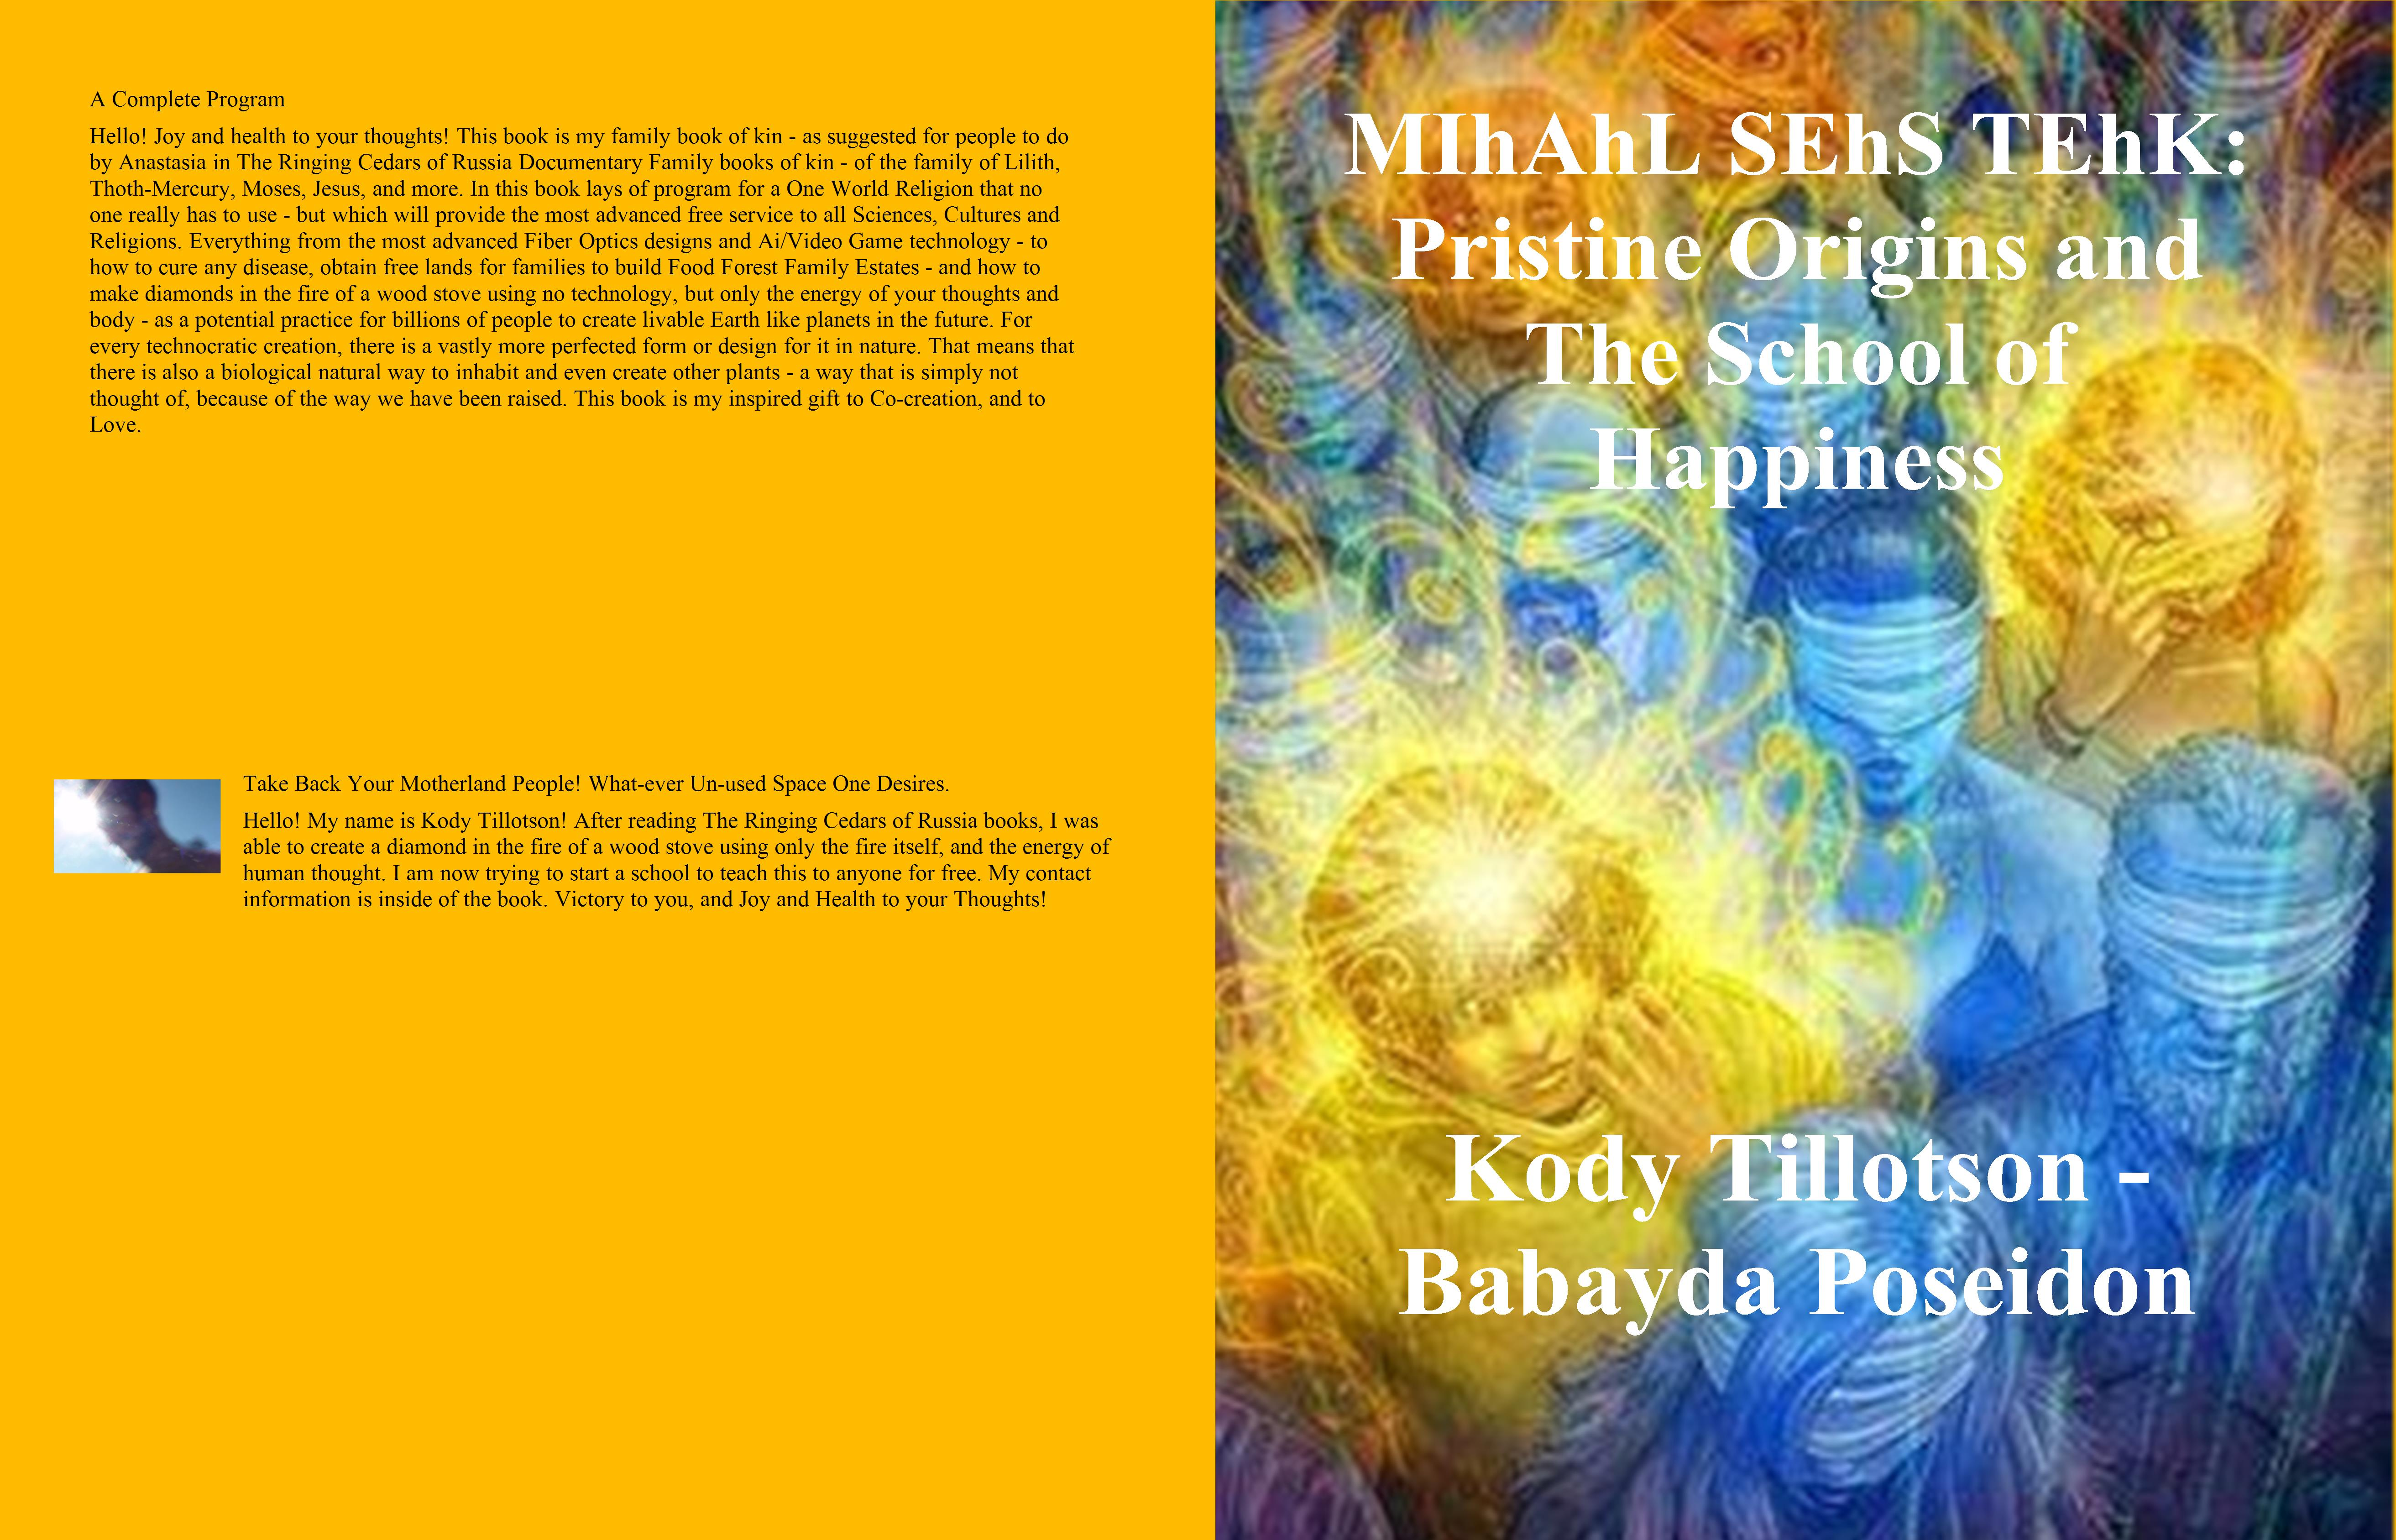 MIhAhL SEhS TEhK: Pristine Origins and The School of Happiness cover image